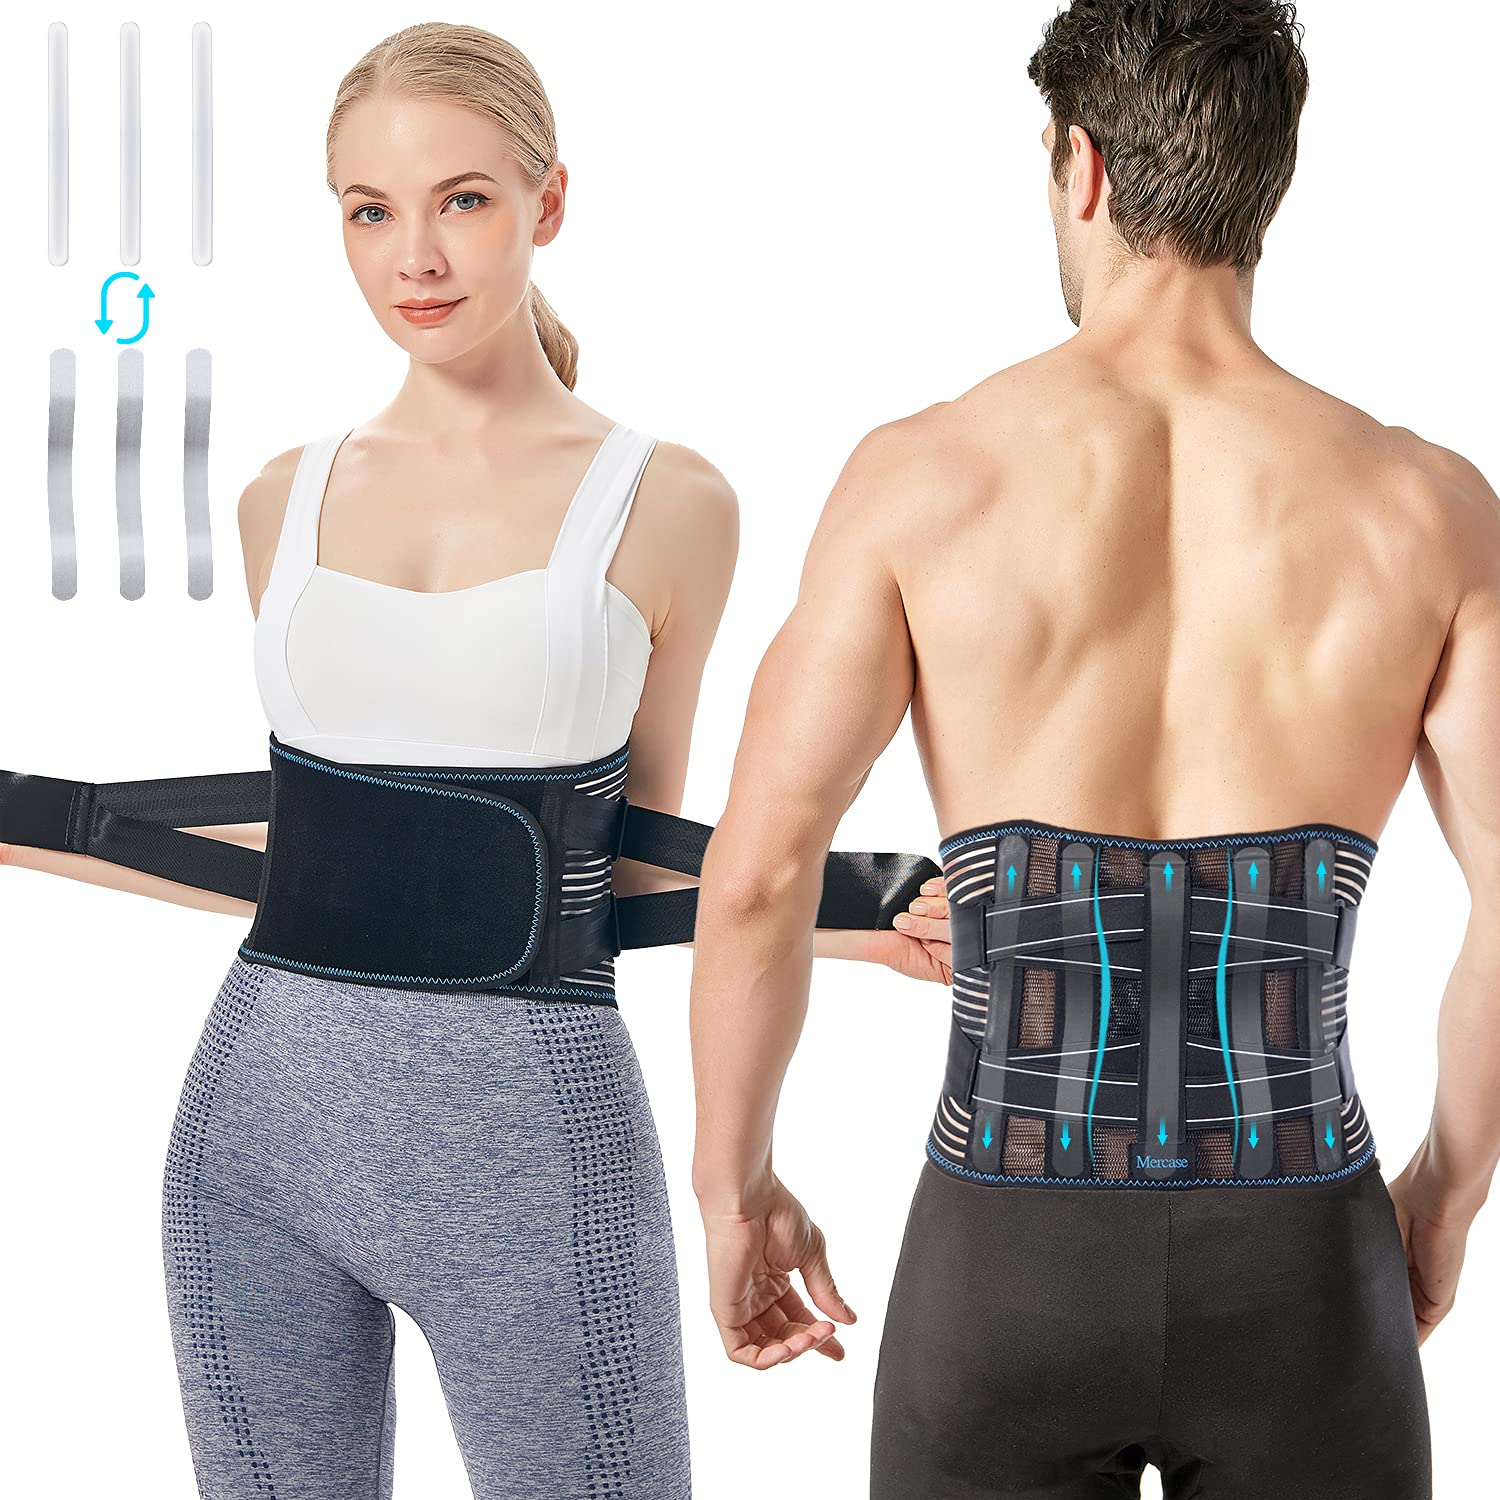 Mercase Back Support Belt for Men Free Shipping New Lower Brace fo and New color Women